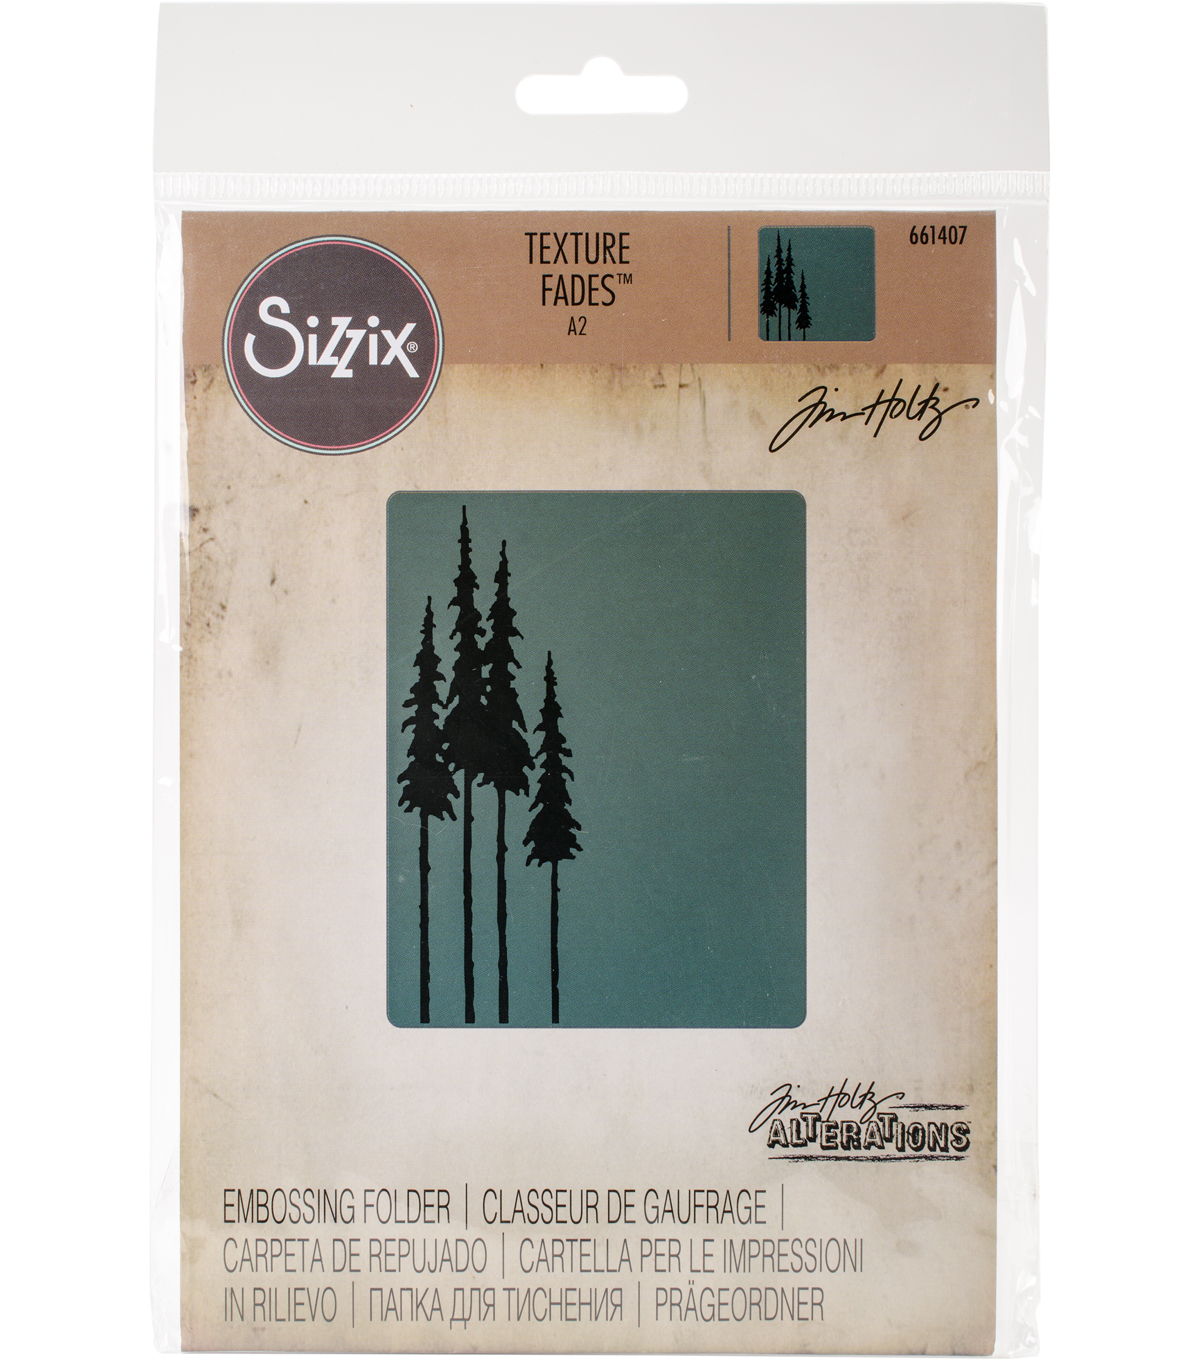 Sizzix Texture Fades A2 Embossing Folder-Tall Pines